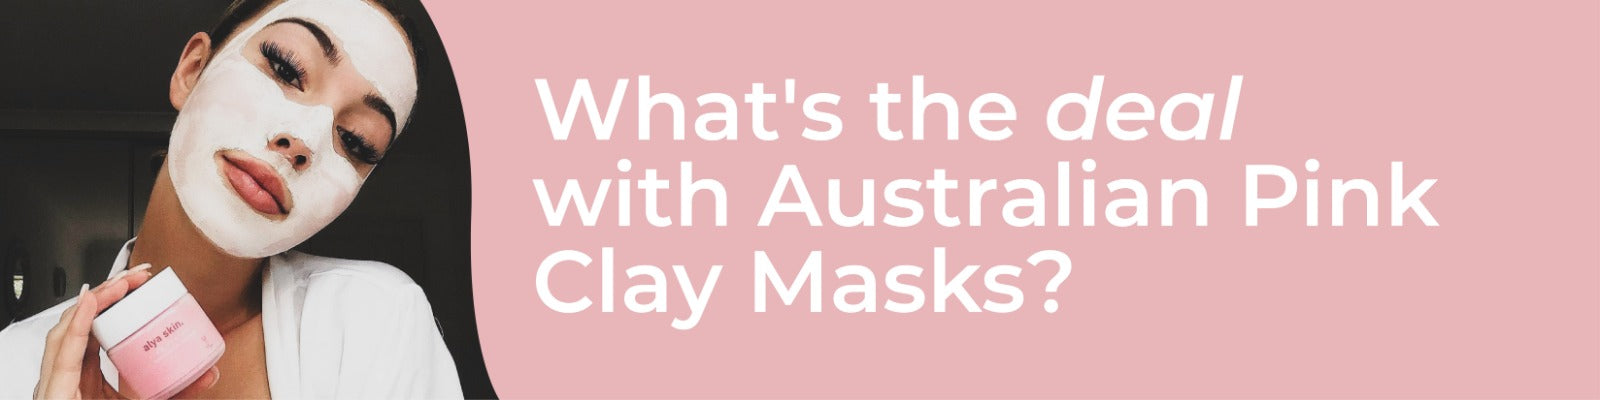 What's the deal with Australian Pink Clay Masks?